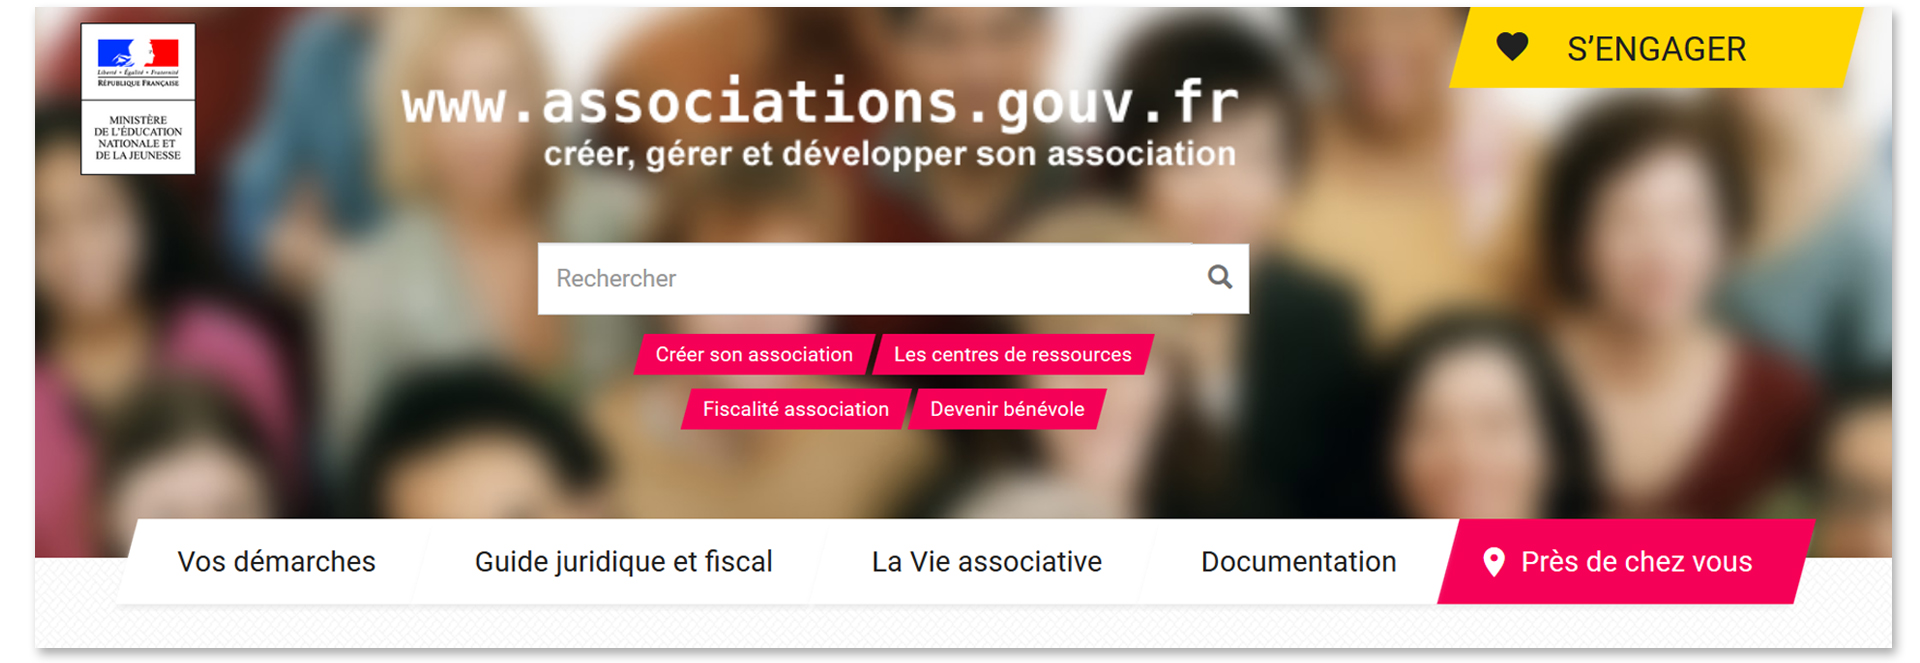 Gestion association : associations.gouv.fr